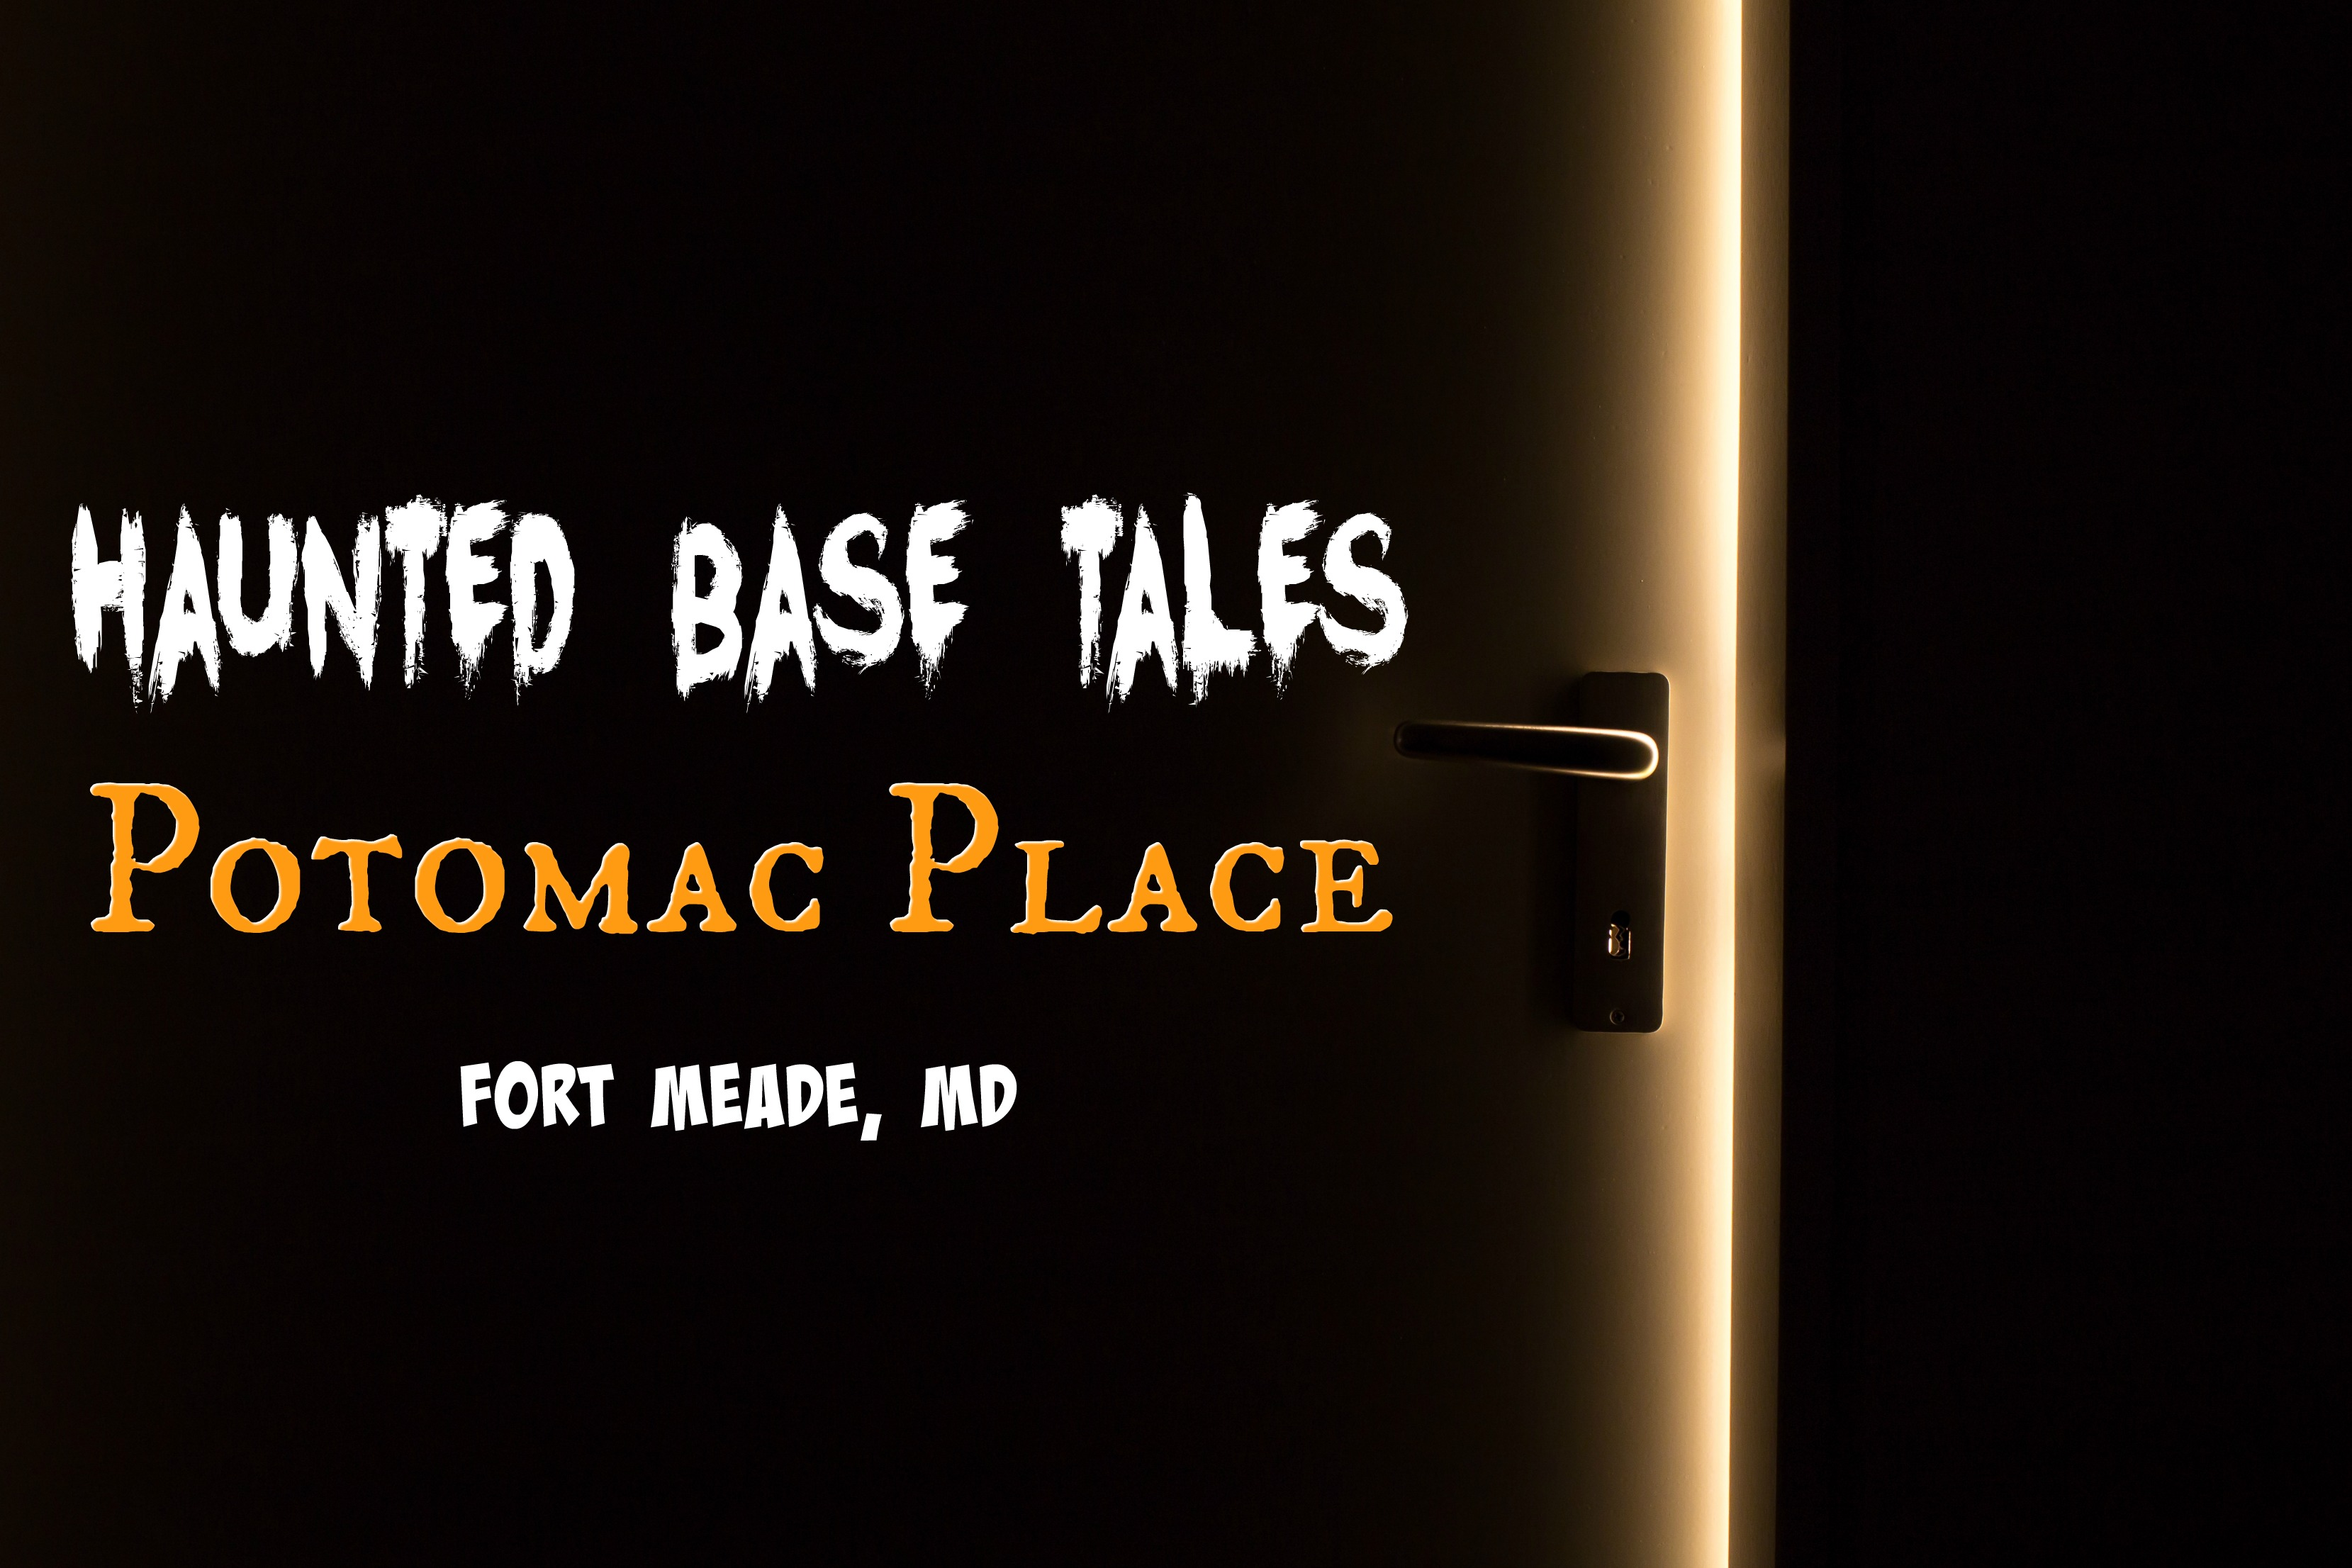 Haunted Base Tales — Potomac Place, Fort Meade, MD